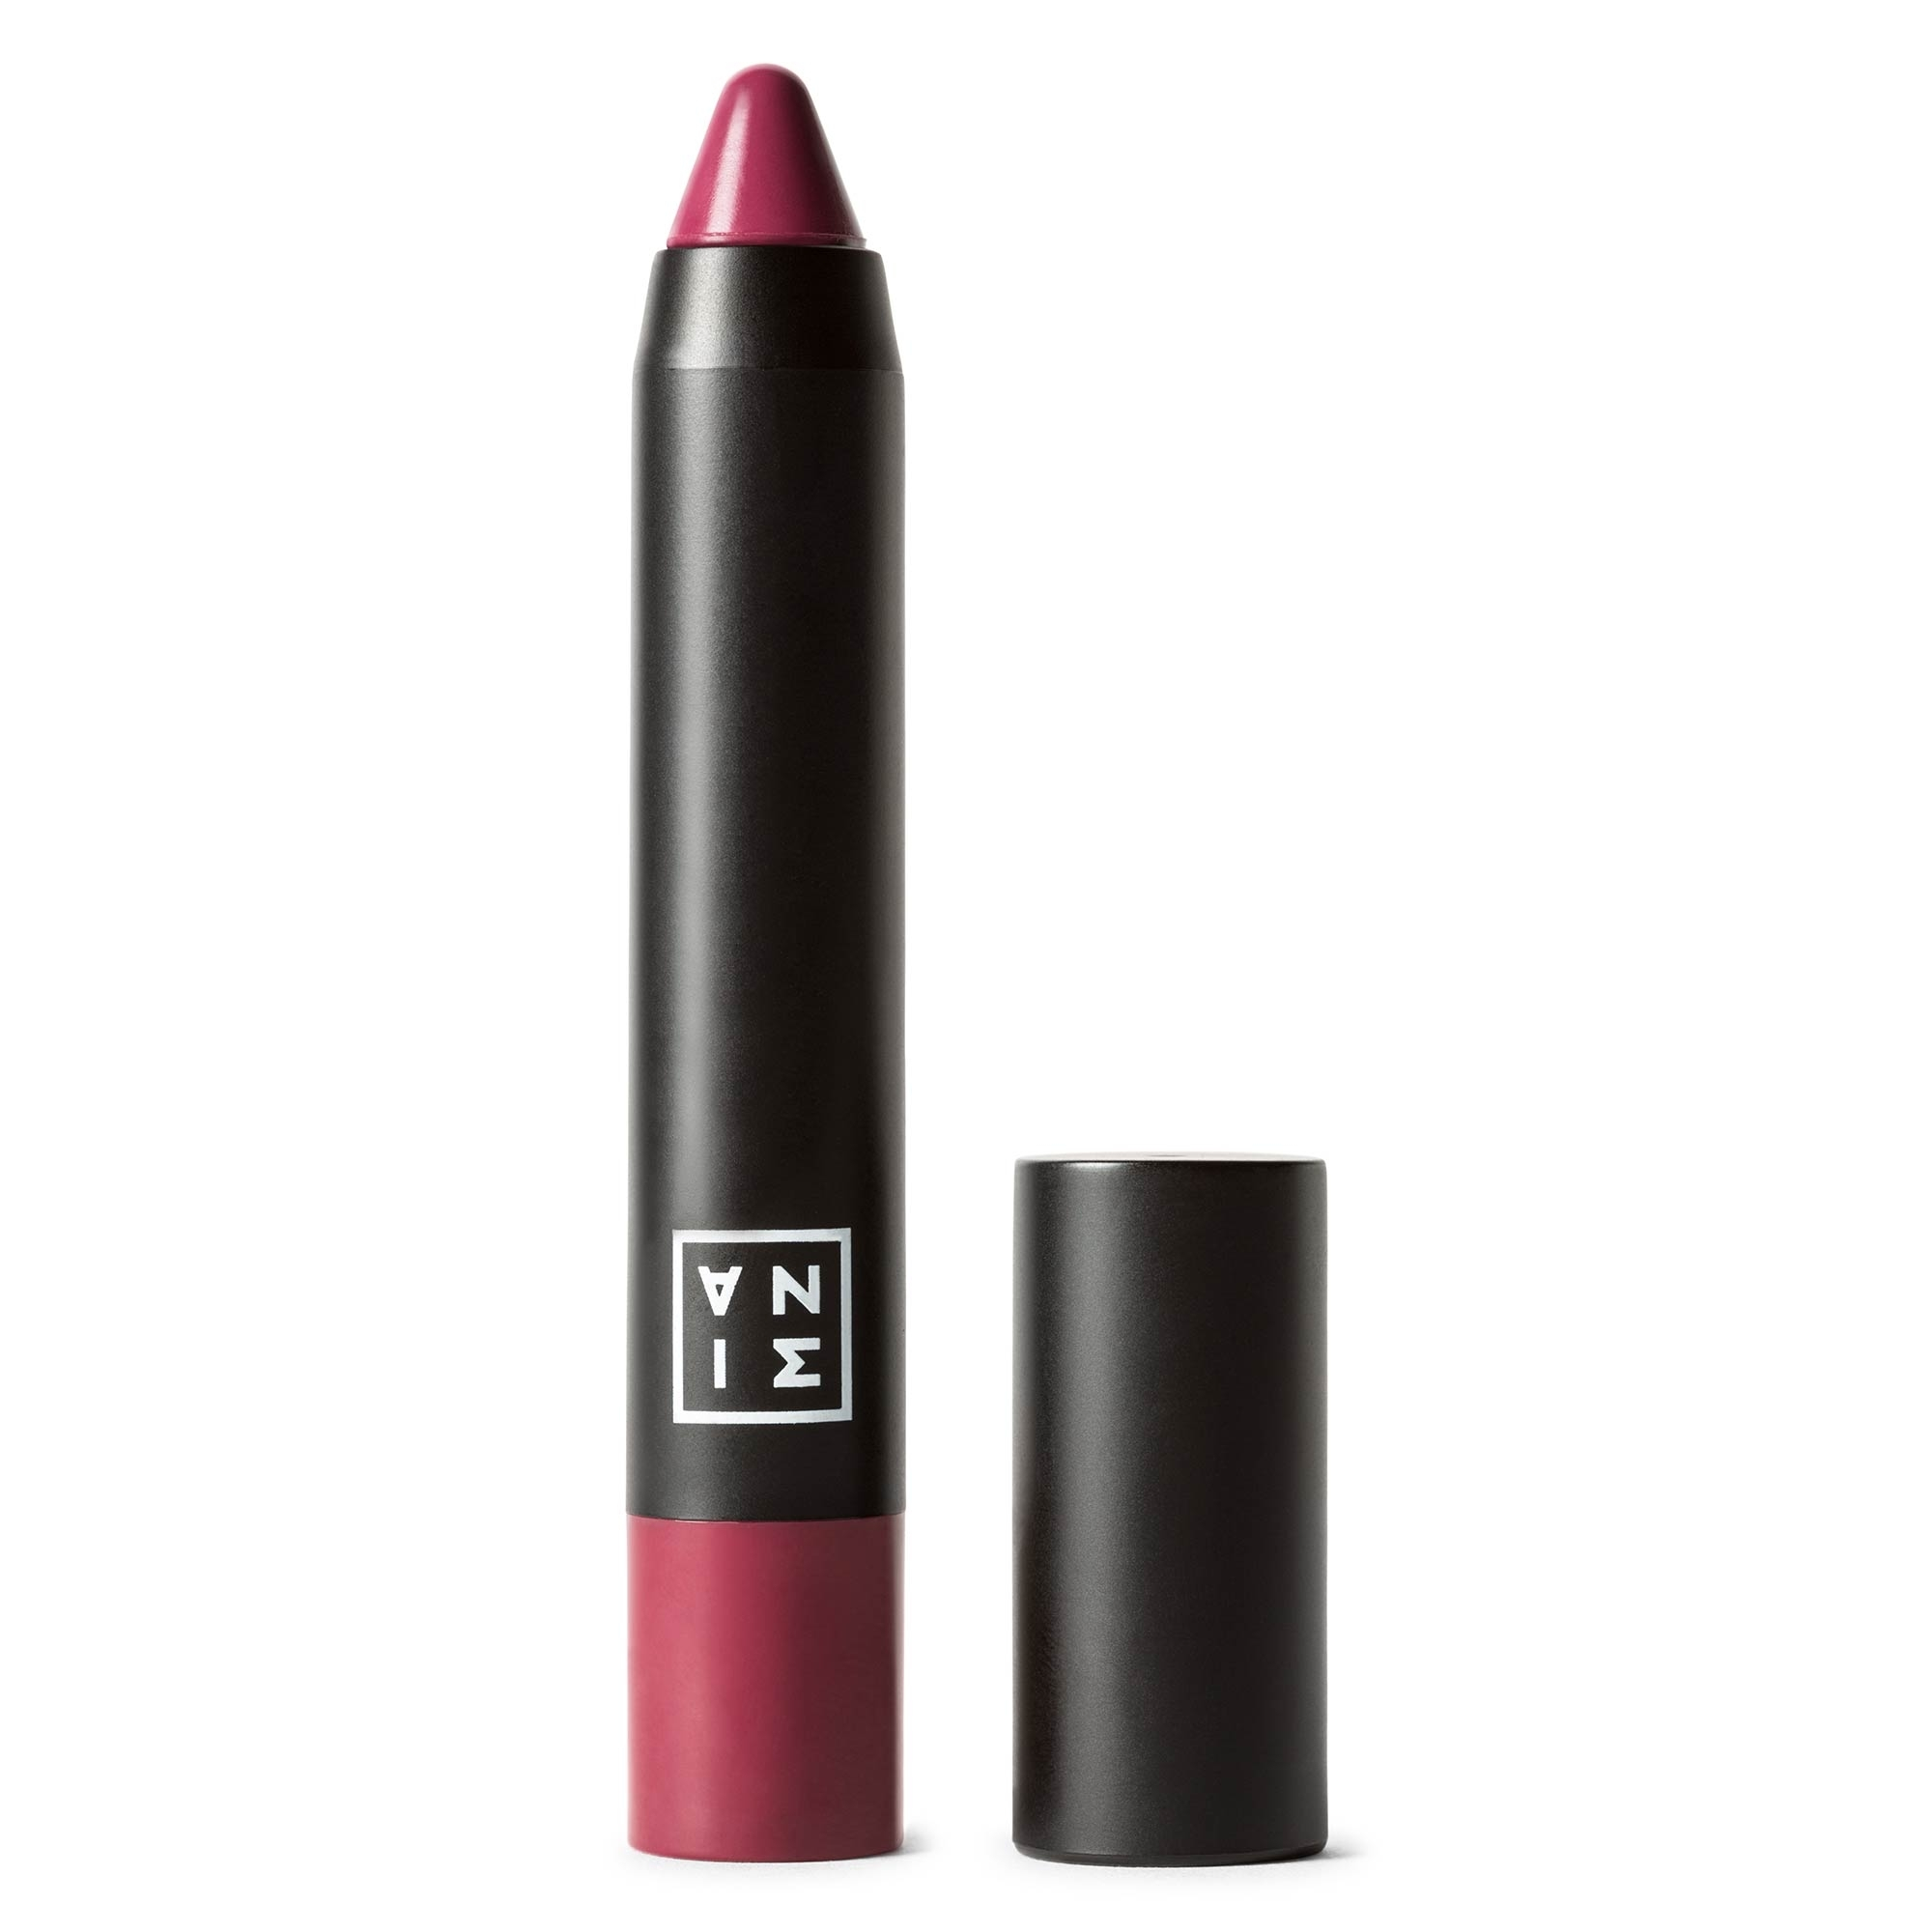 3INA Makeup | The Chubby Lipstick 117 Red